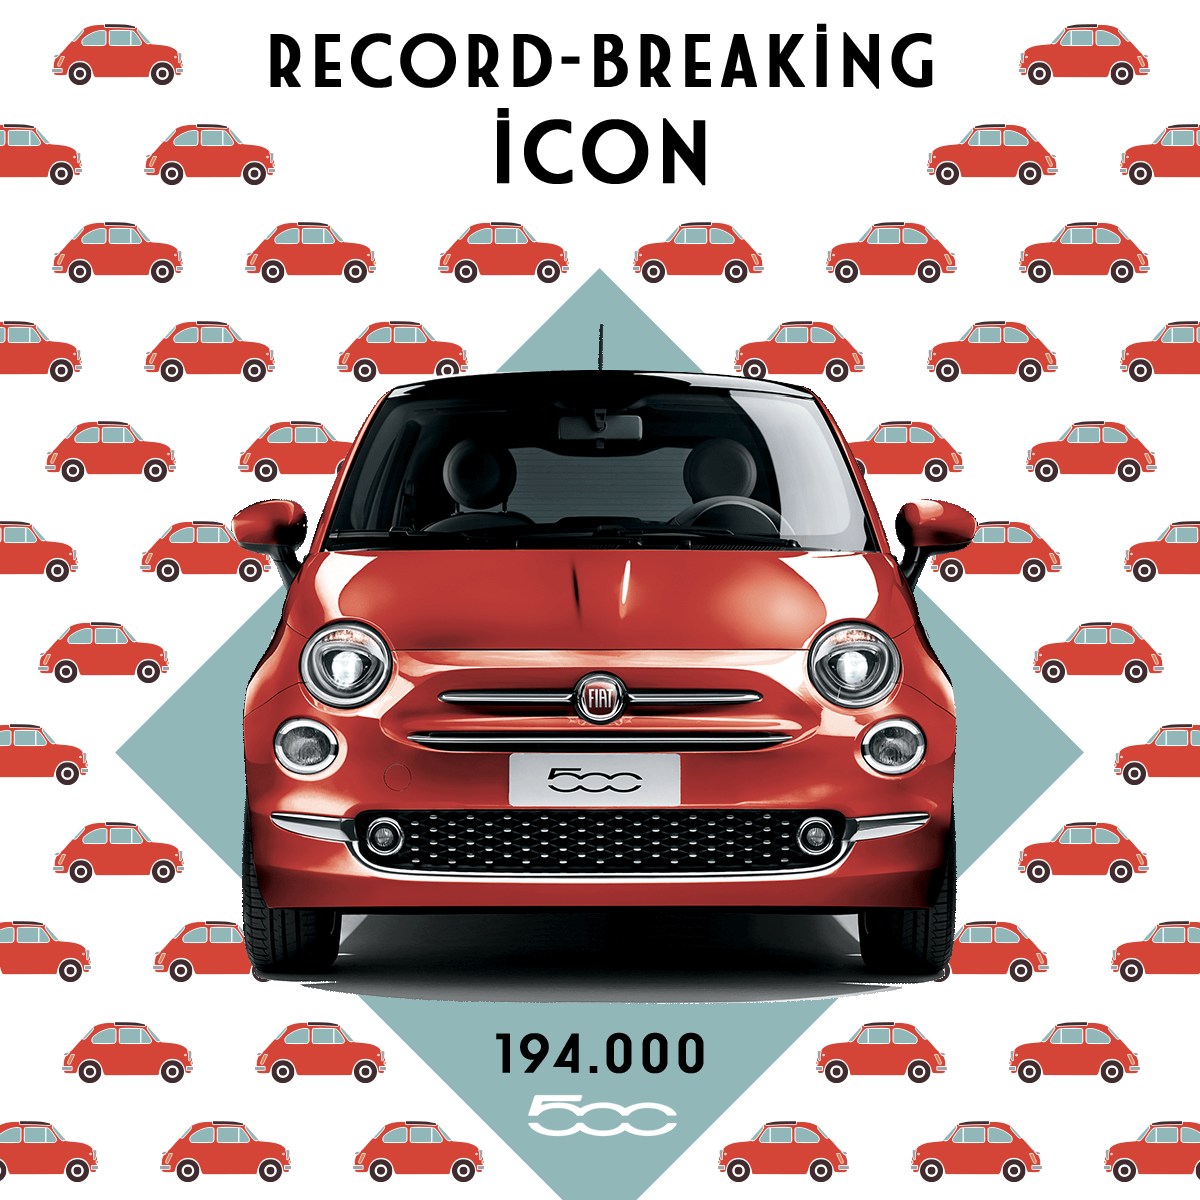 FIAT_ICON_FB_ENG